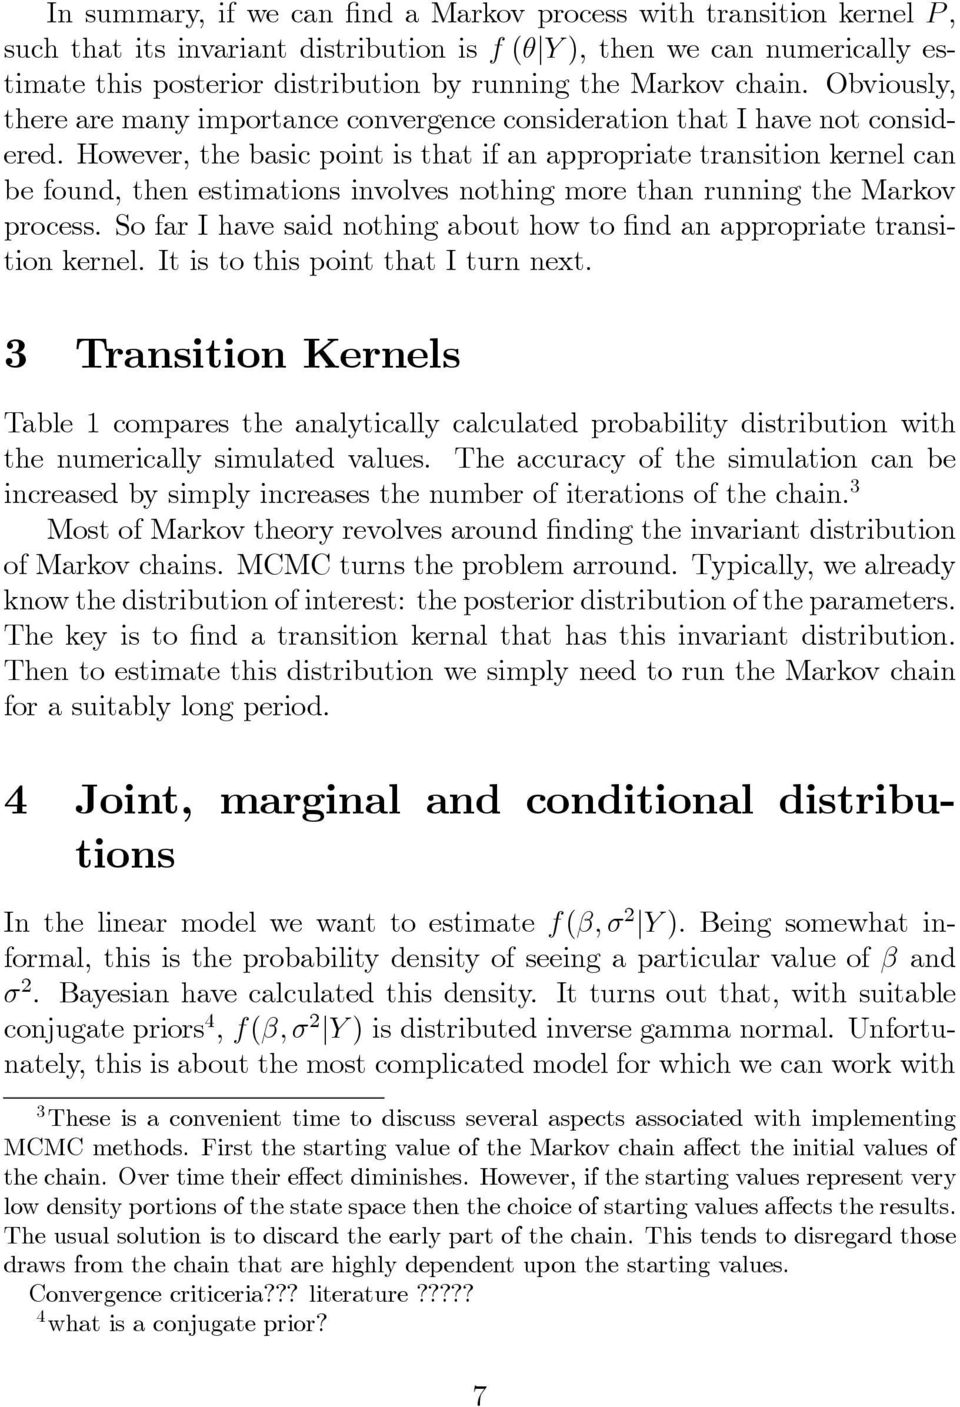 However, the basic point is that if an appropriate transition kernel can be found, then estimations involves nothing more than running the Markov process.